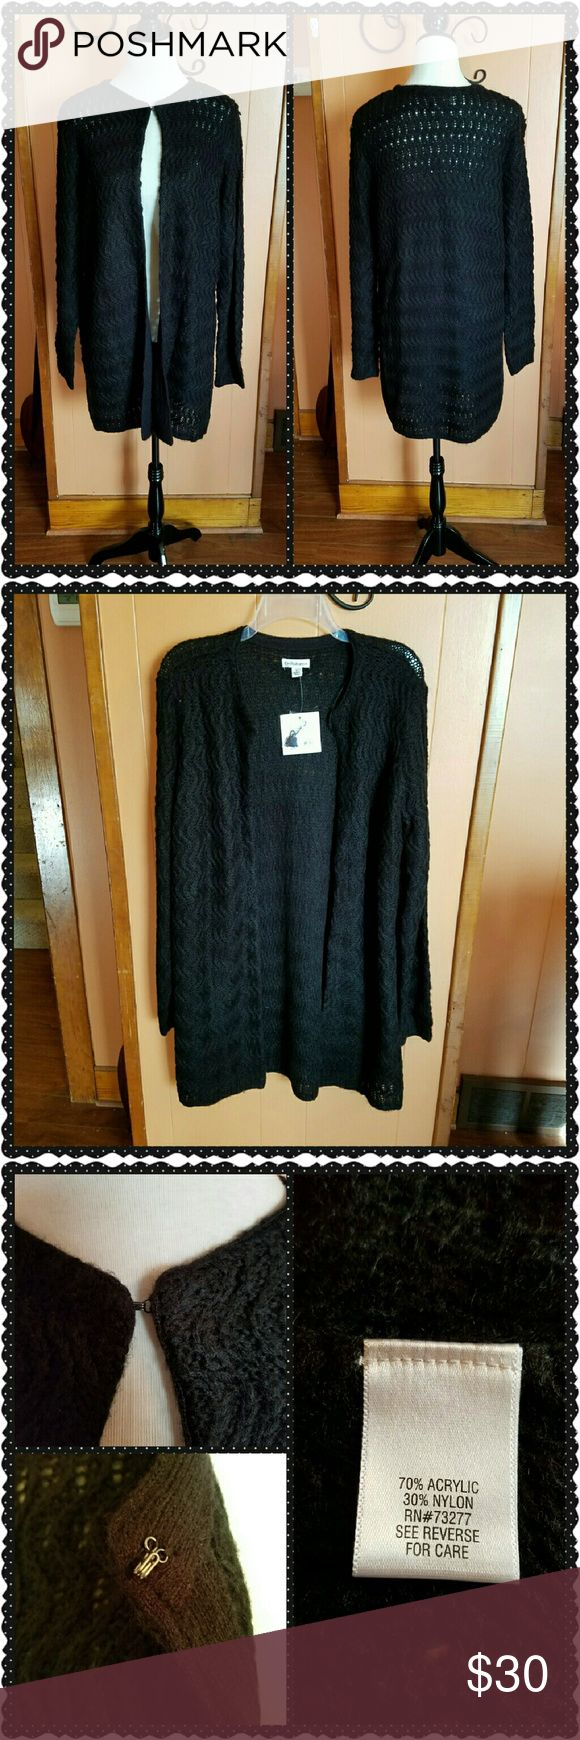 Long open cardigan sweater This long black sweater is very soft and warm. Machine washable. The length from shoulder to hem is approximately 35 inches long. There is a single hook closure at the neckline. croft & barrow Sweaters Cardigans